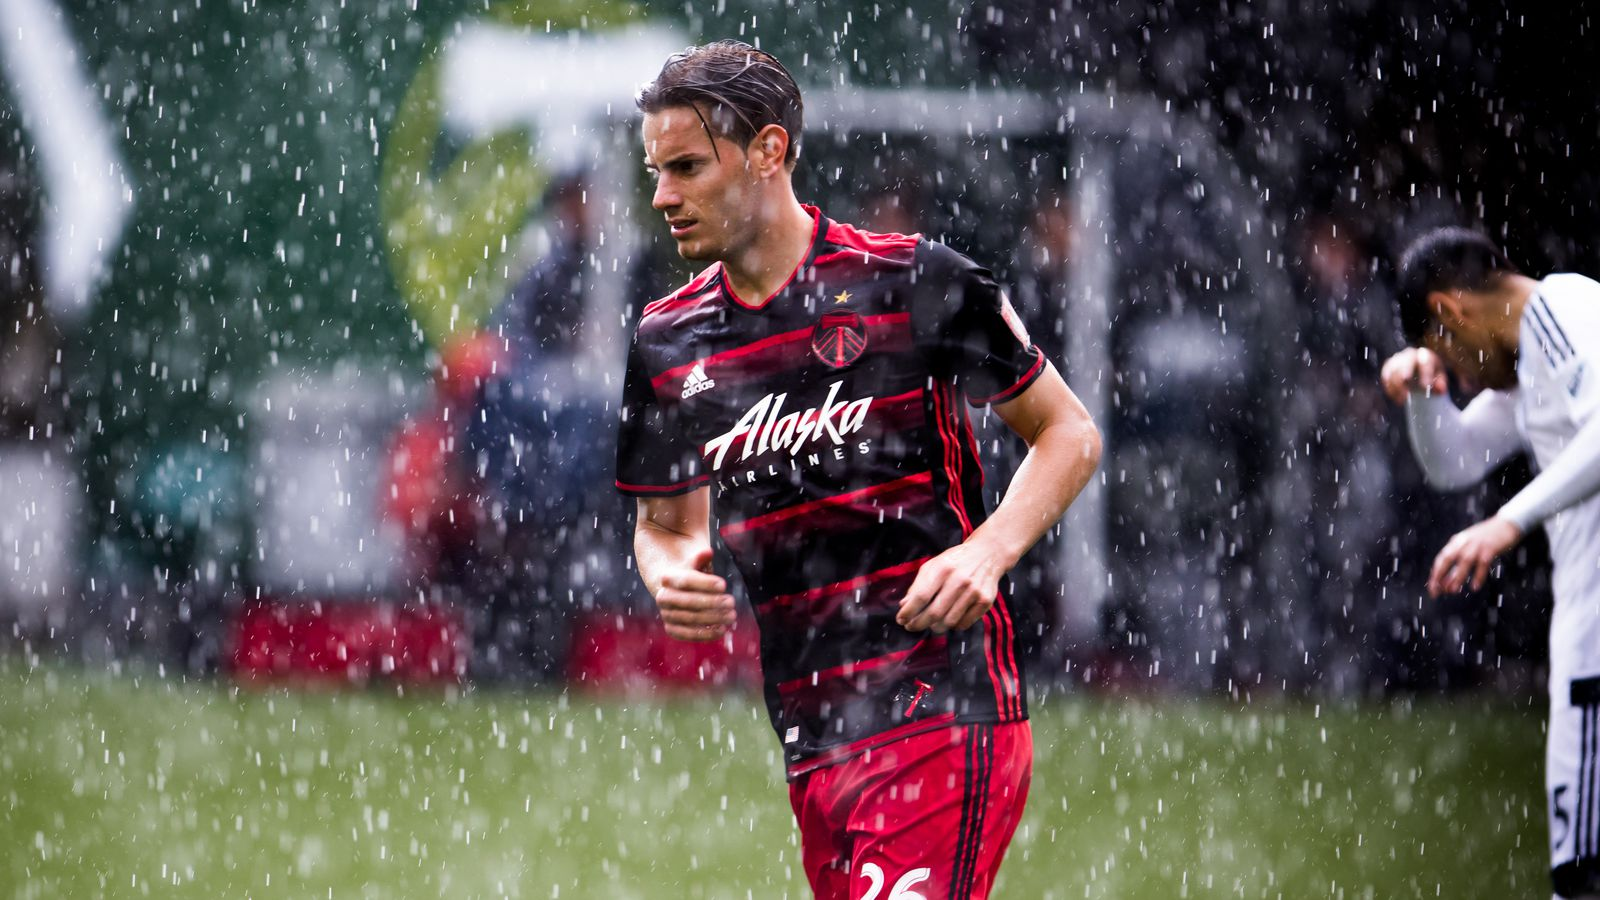 Melano-portland-timbers-vancouver-whitecaps-5-22-16-roscoe-myrick-red-city-images.jpg__1_of_1_-5.0.0